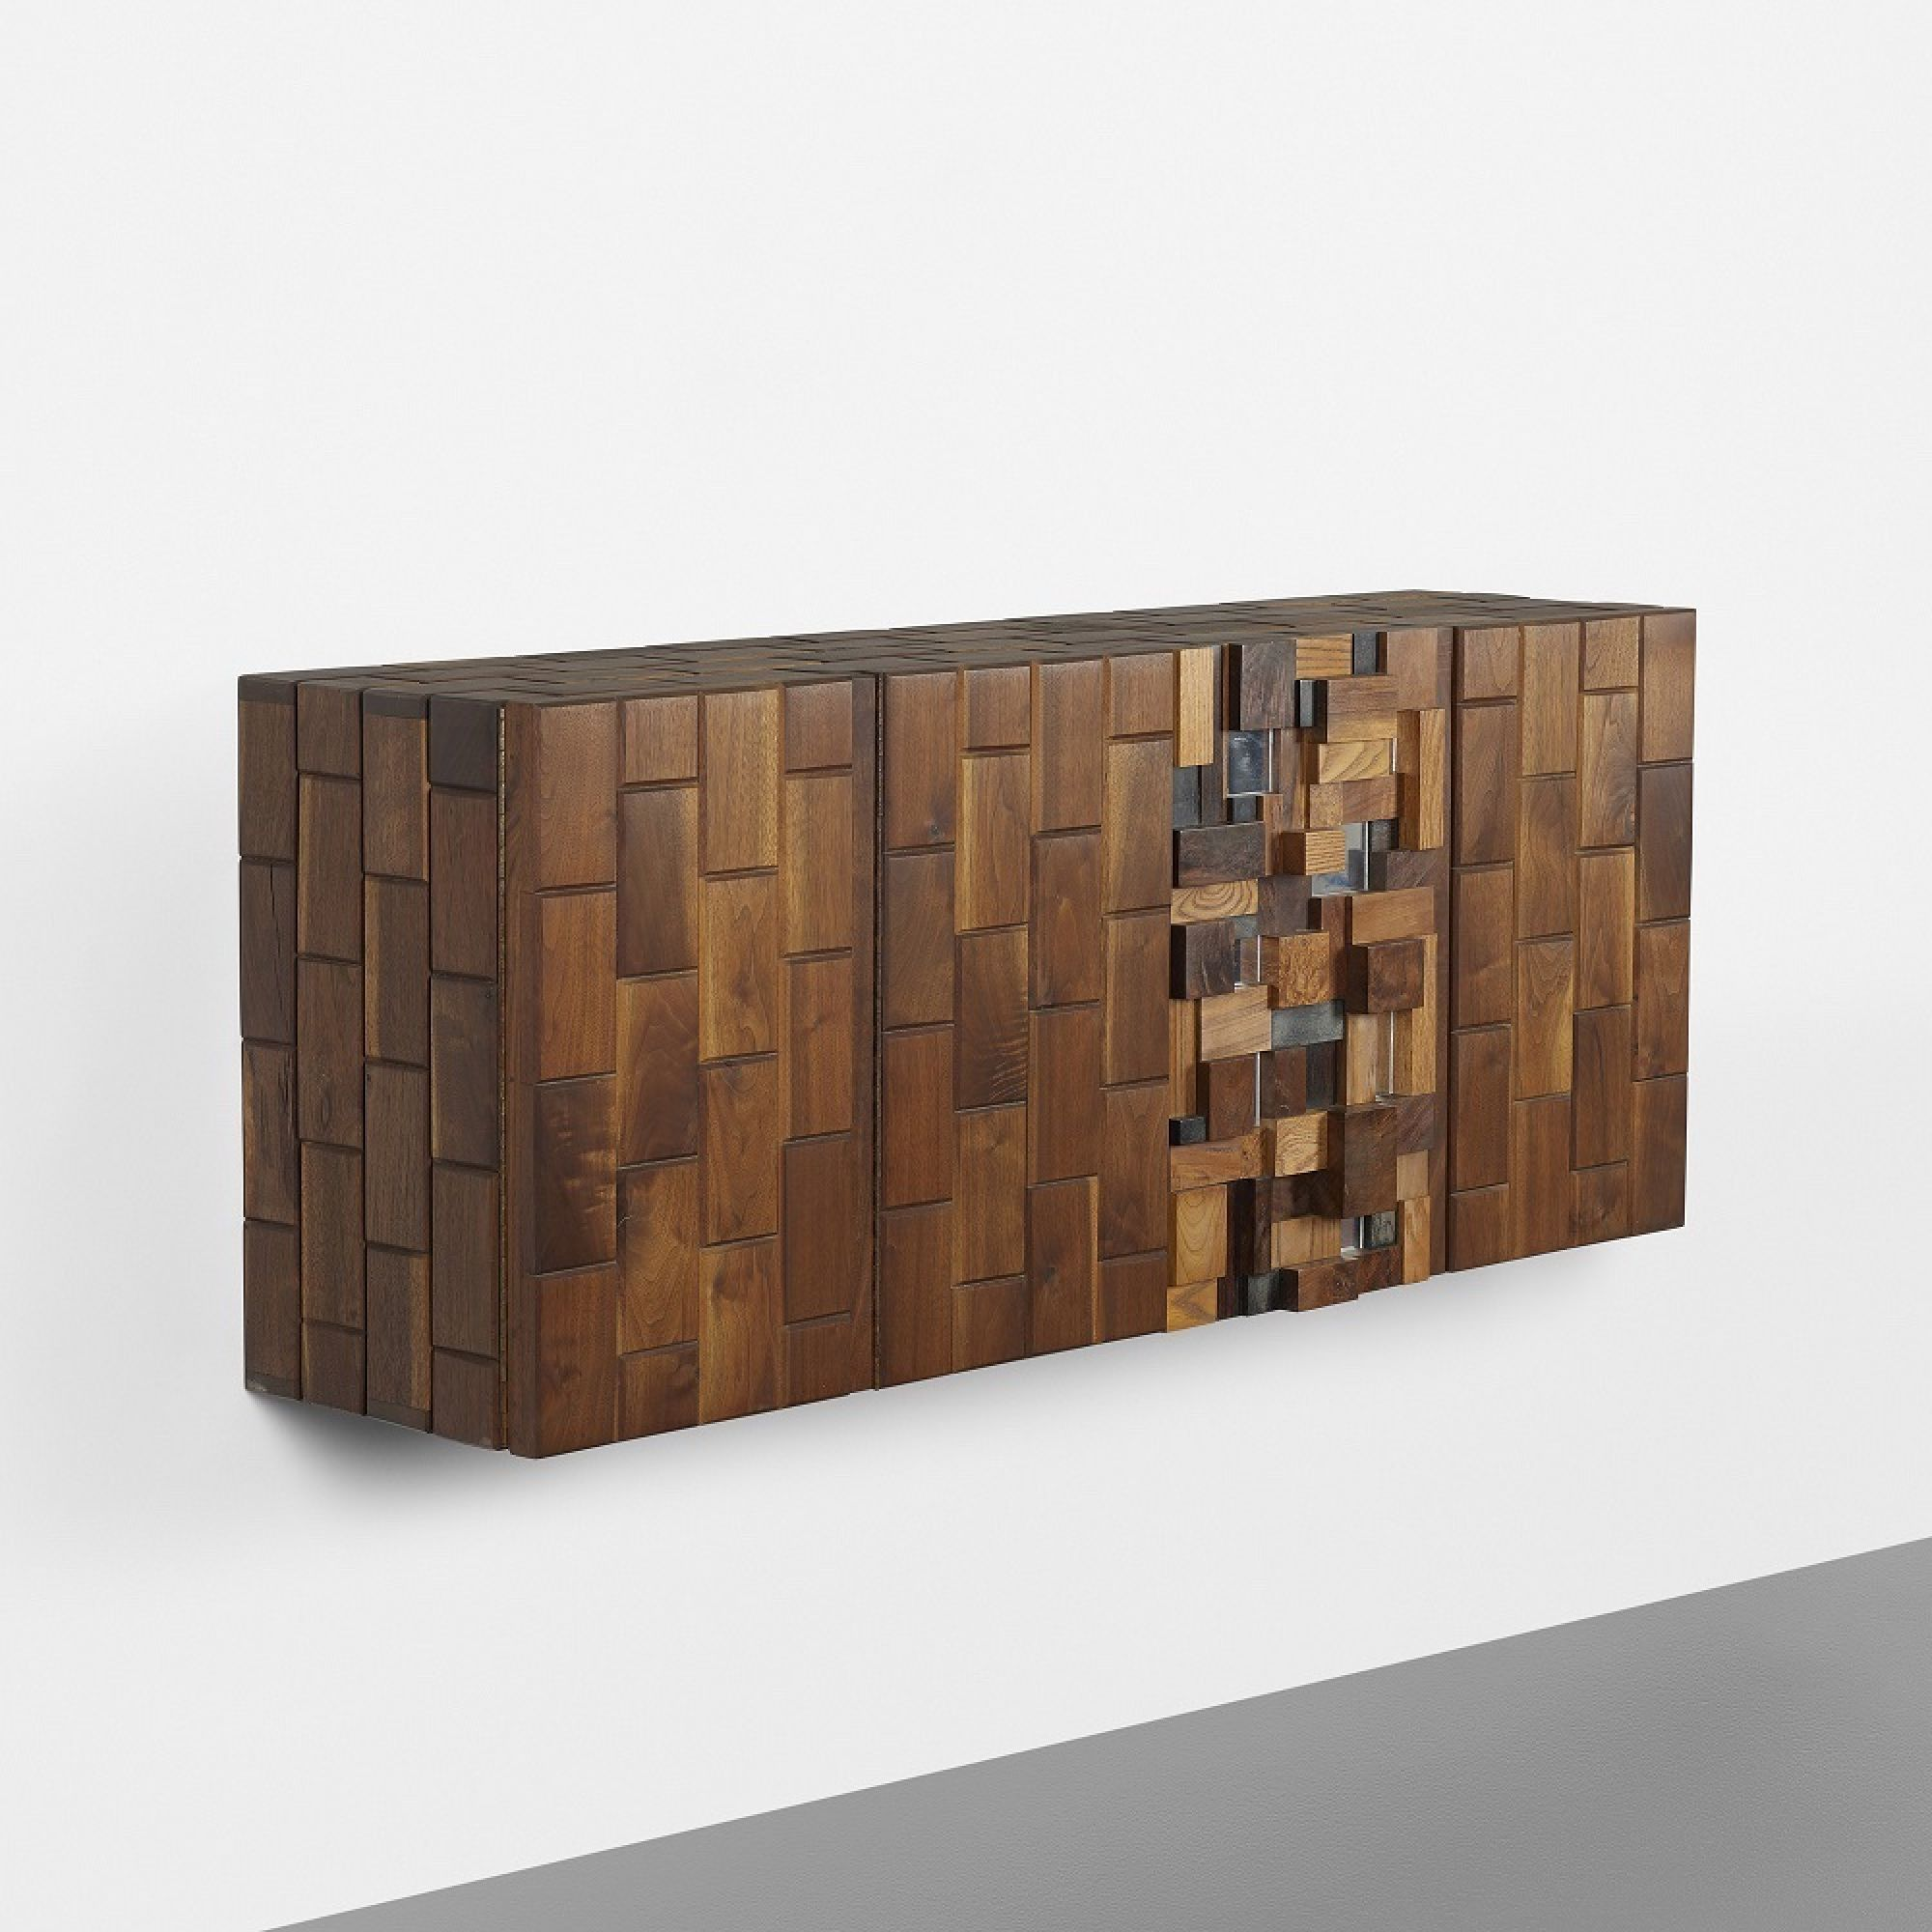 Phillip Lloyd Powell's dramatic wall-mounted cabinet sports a sculptural collage of exotic woods and reminds us of the brawny but glamorous case goods of furniture-maker Paul Evans.